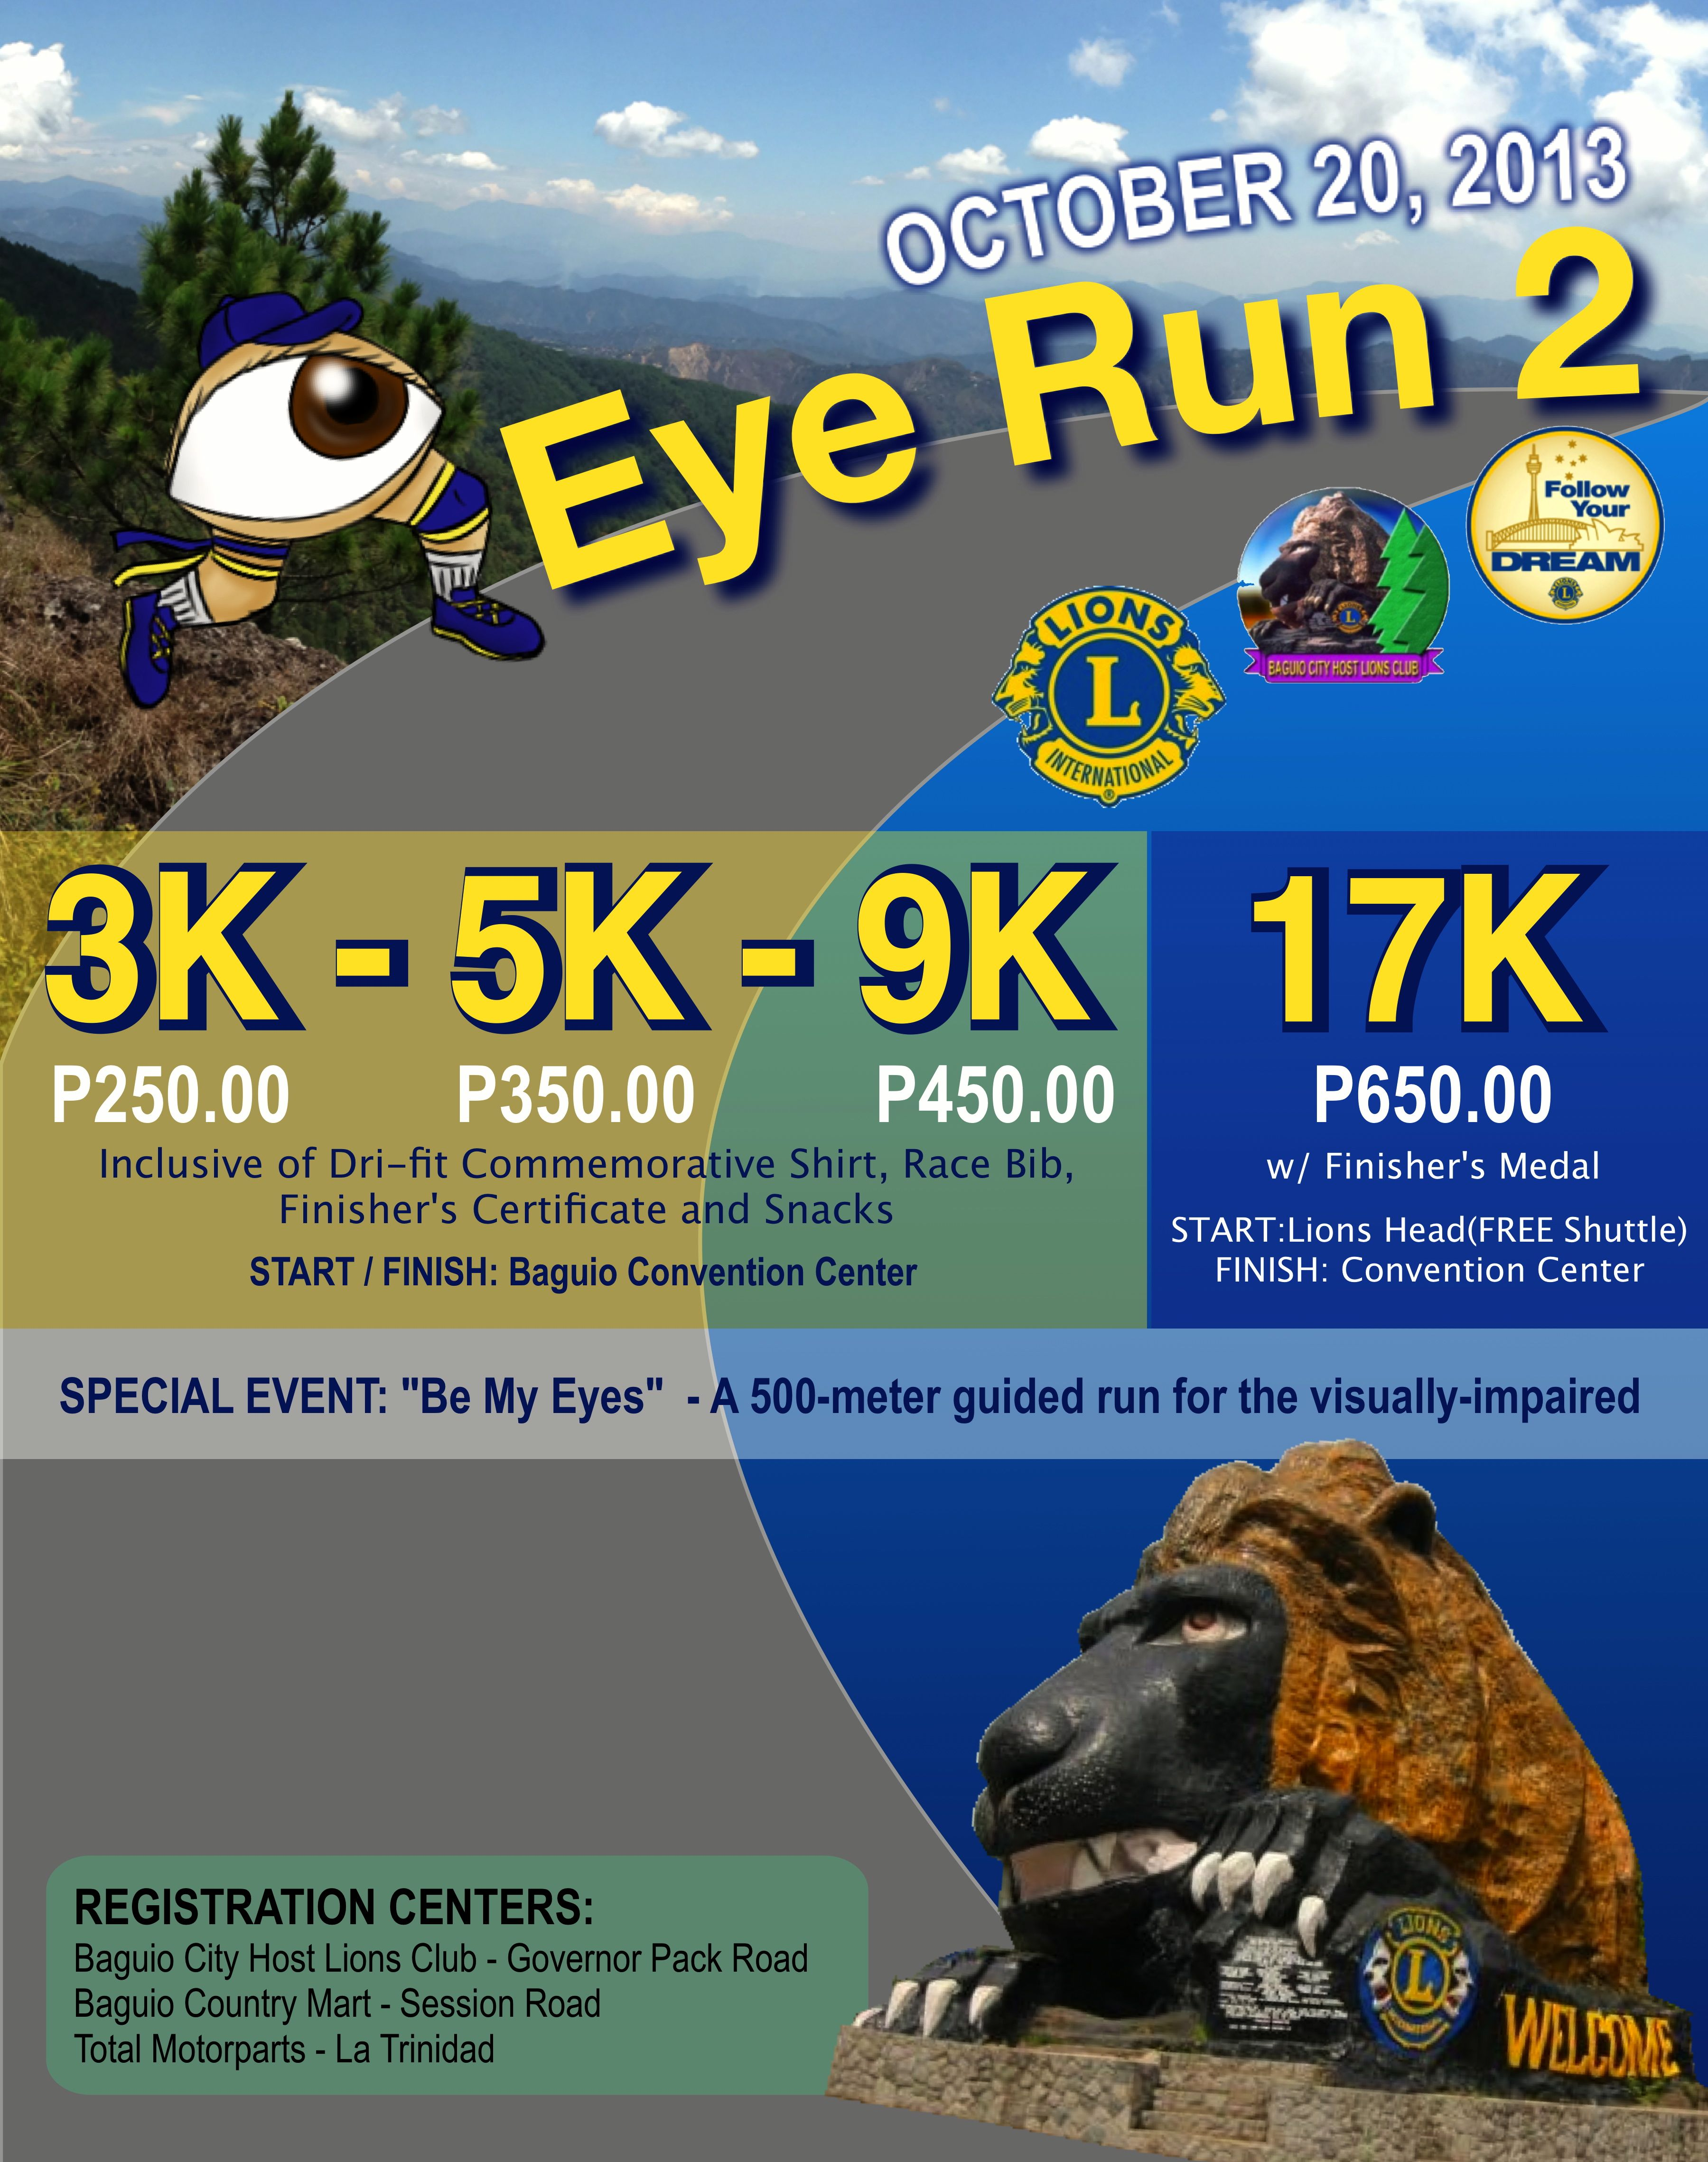 eye-run-2-2013-poster-updated